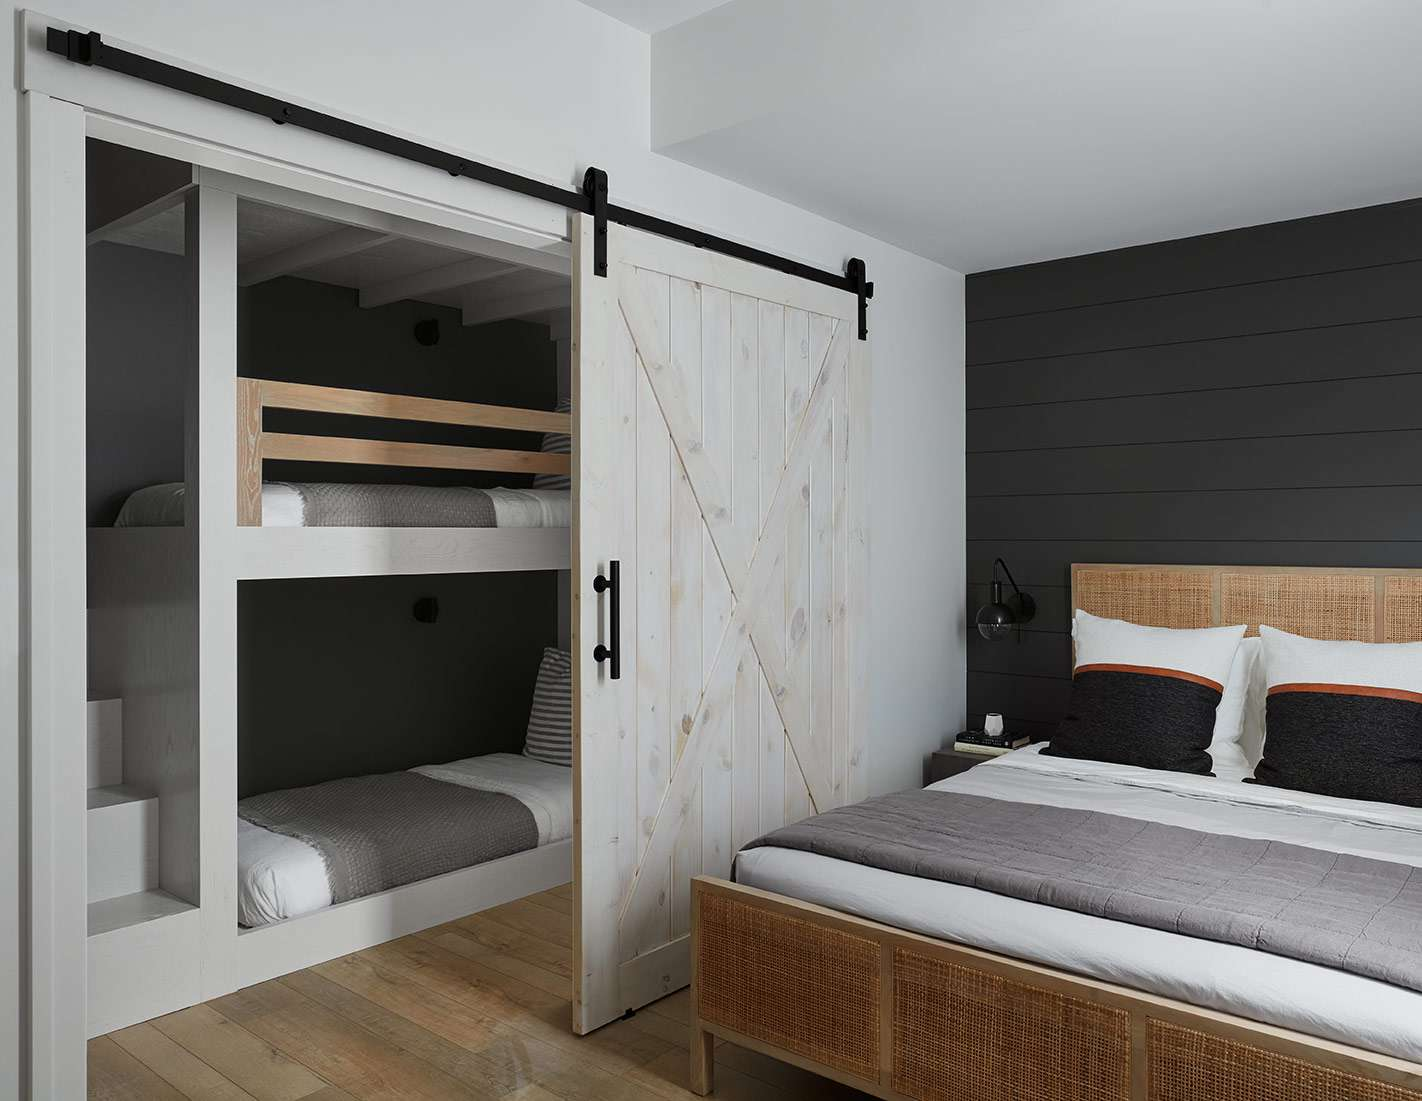 Gray and white bunk beds in room